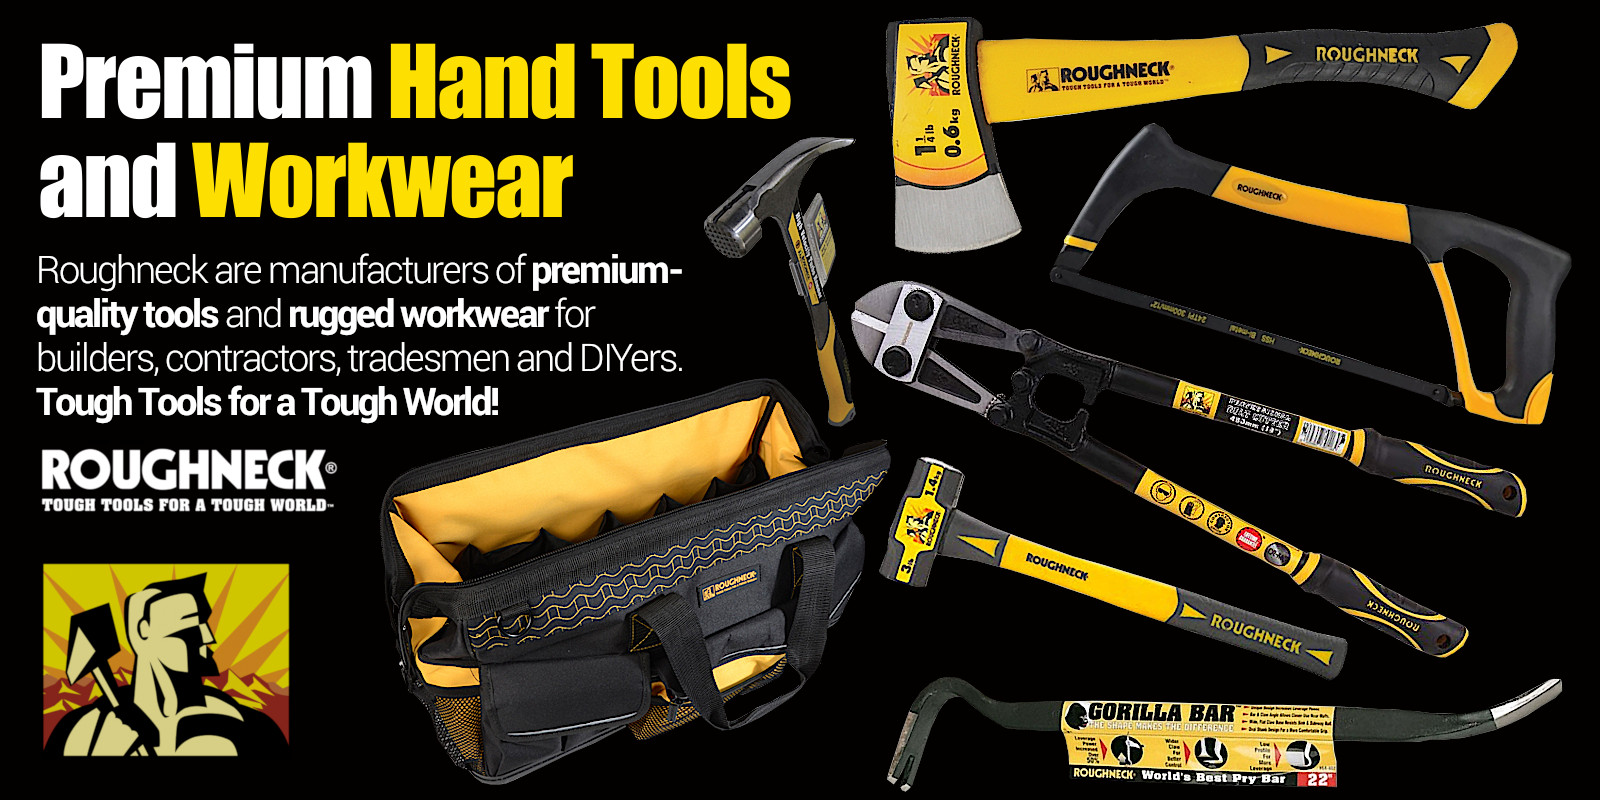 Roughneck Hand Tools and Workwear